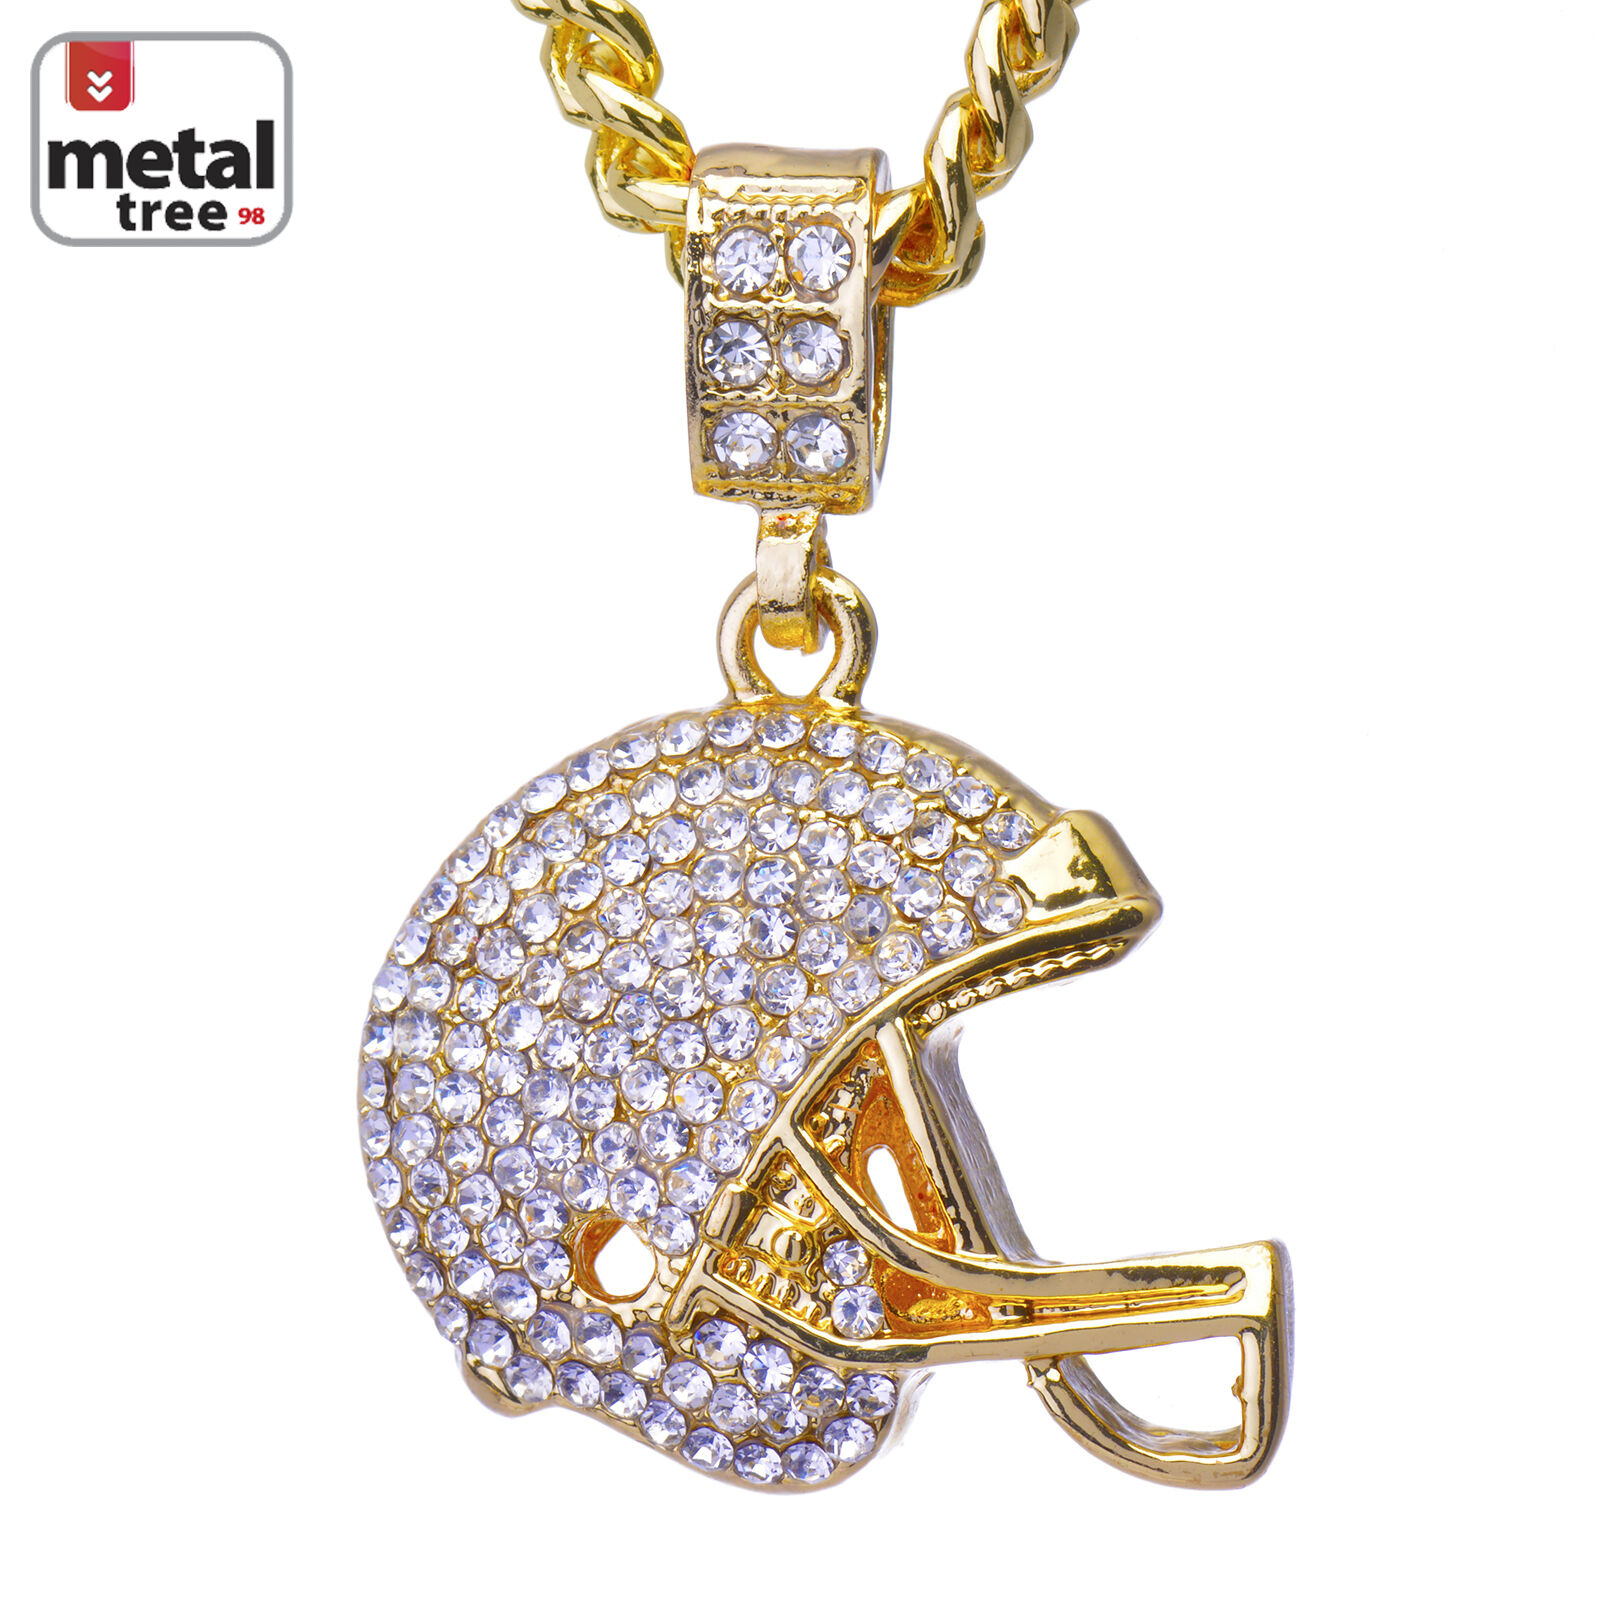 pammyj goldtone necklace pendant football pammyjfashions cluster charm products